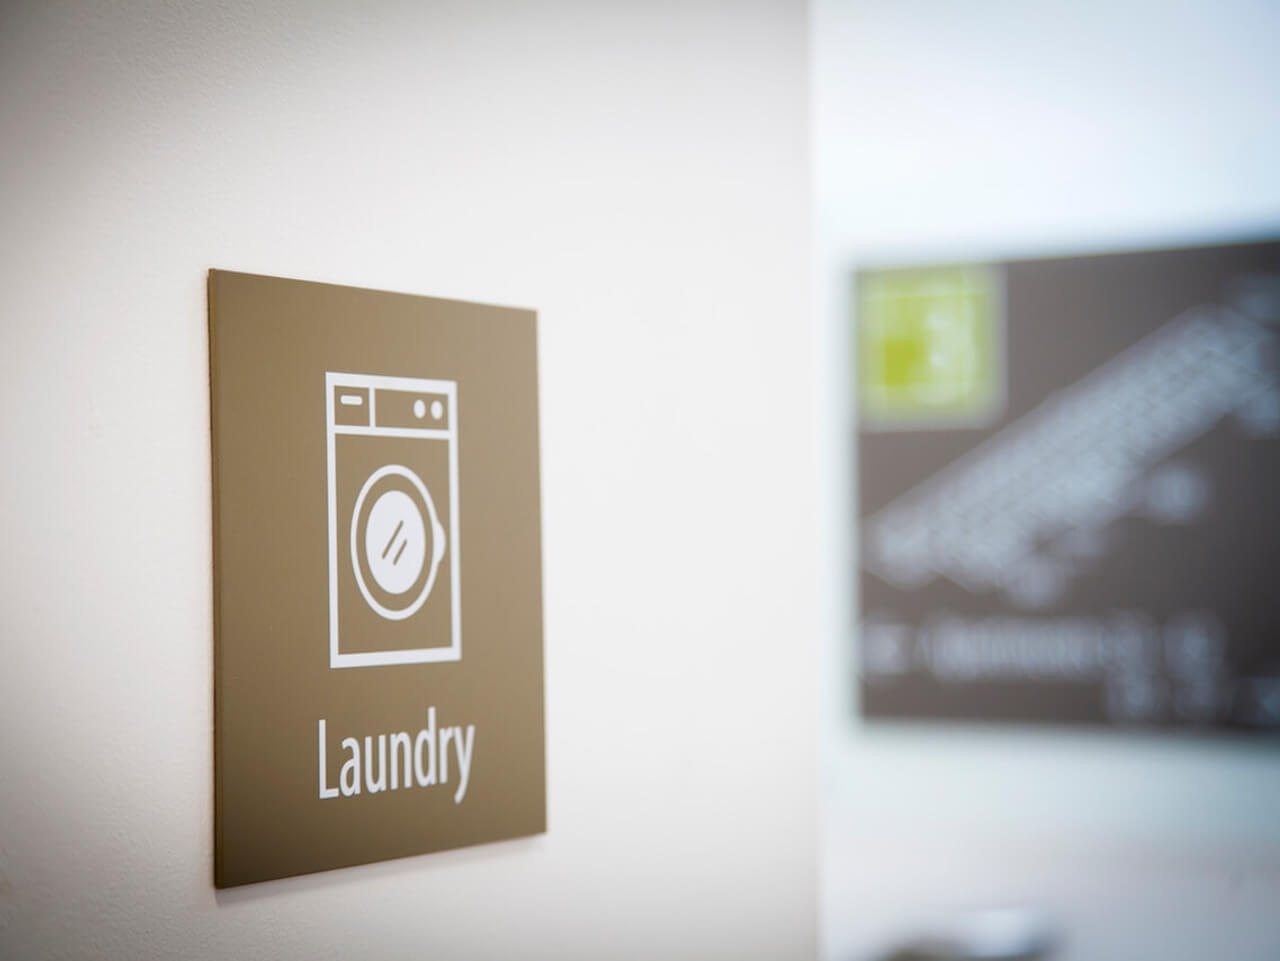 A wayfinding sign with a washing machine icon to show the laundry room